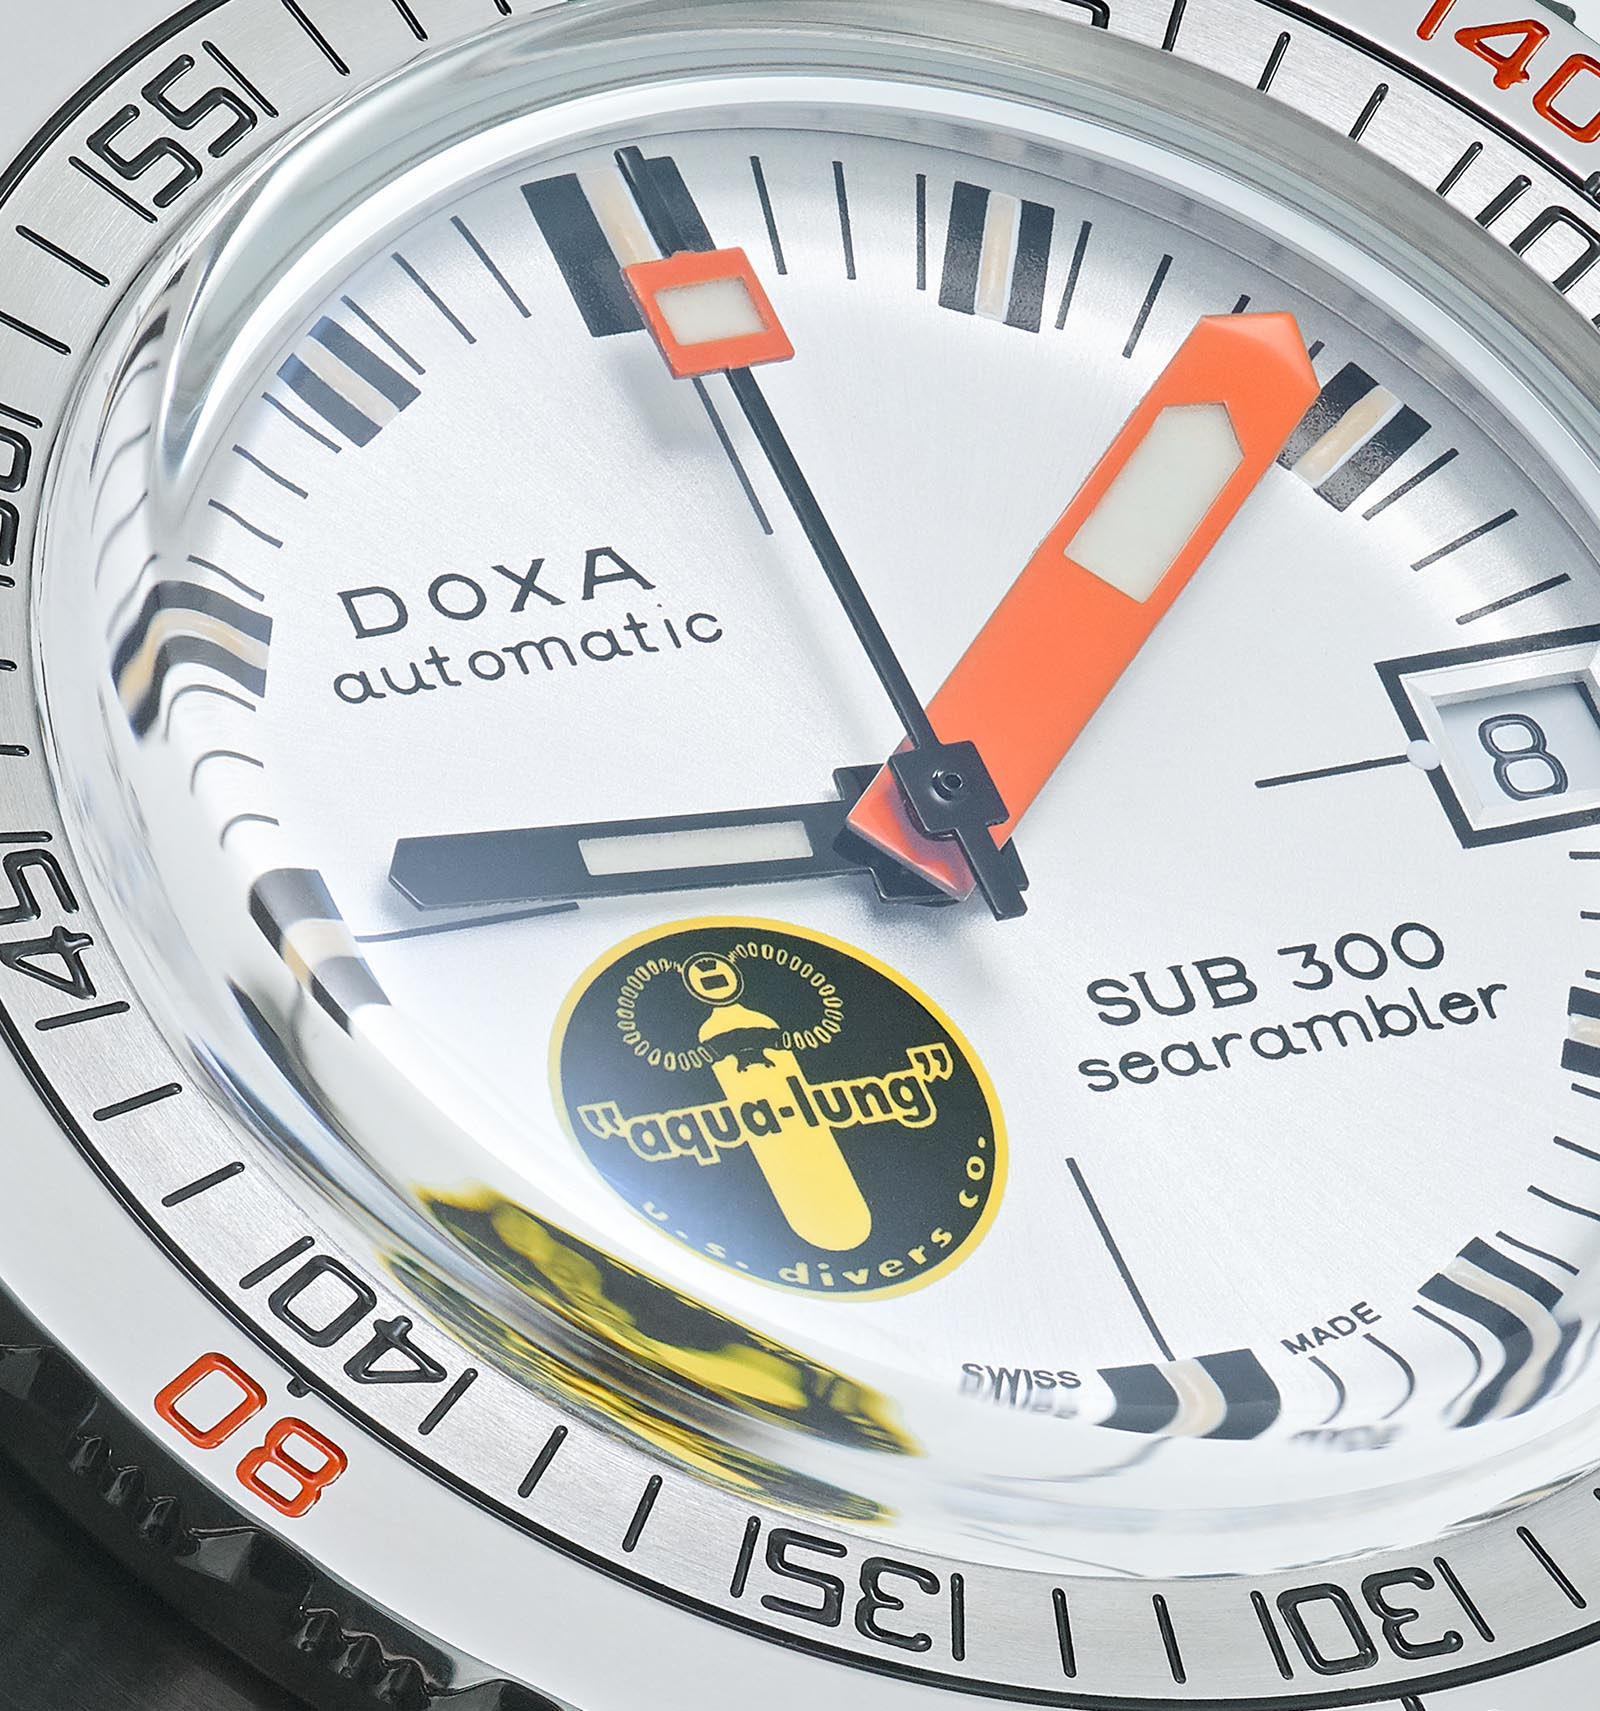 DOXA_Searambler_Black_Lung_dial